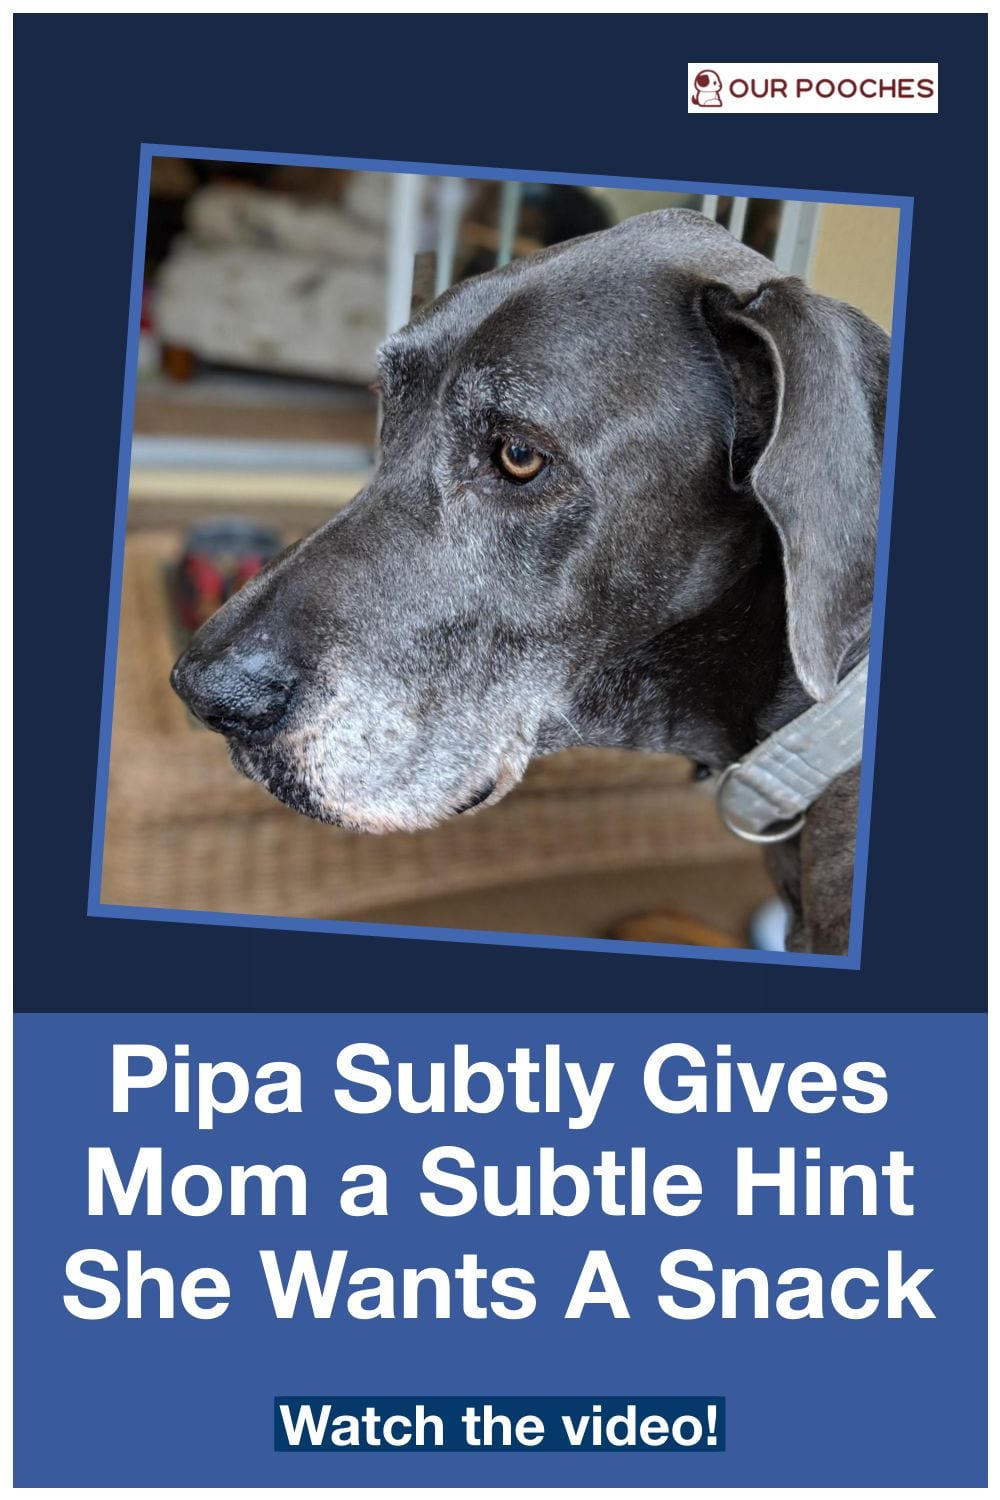 Pipa Subtly Gives Mom a Subtle Hint She Wants A Snack